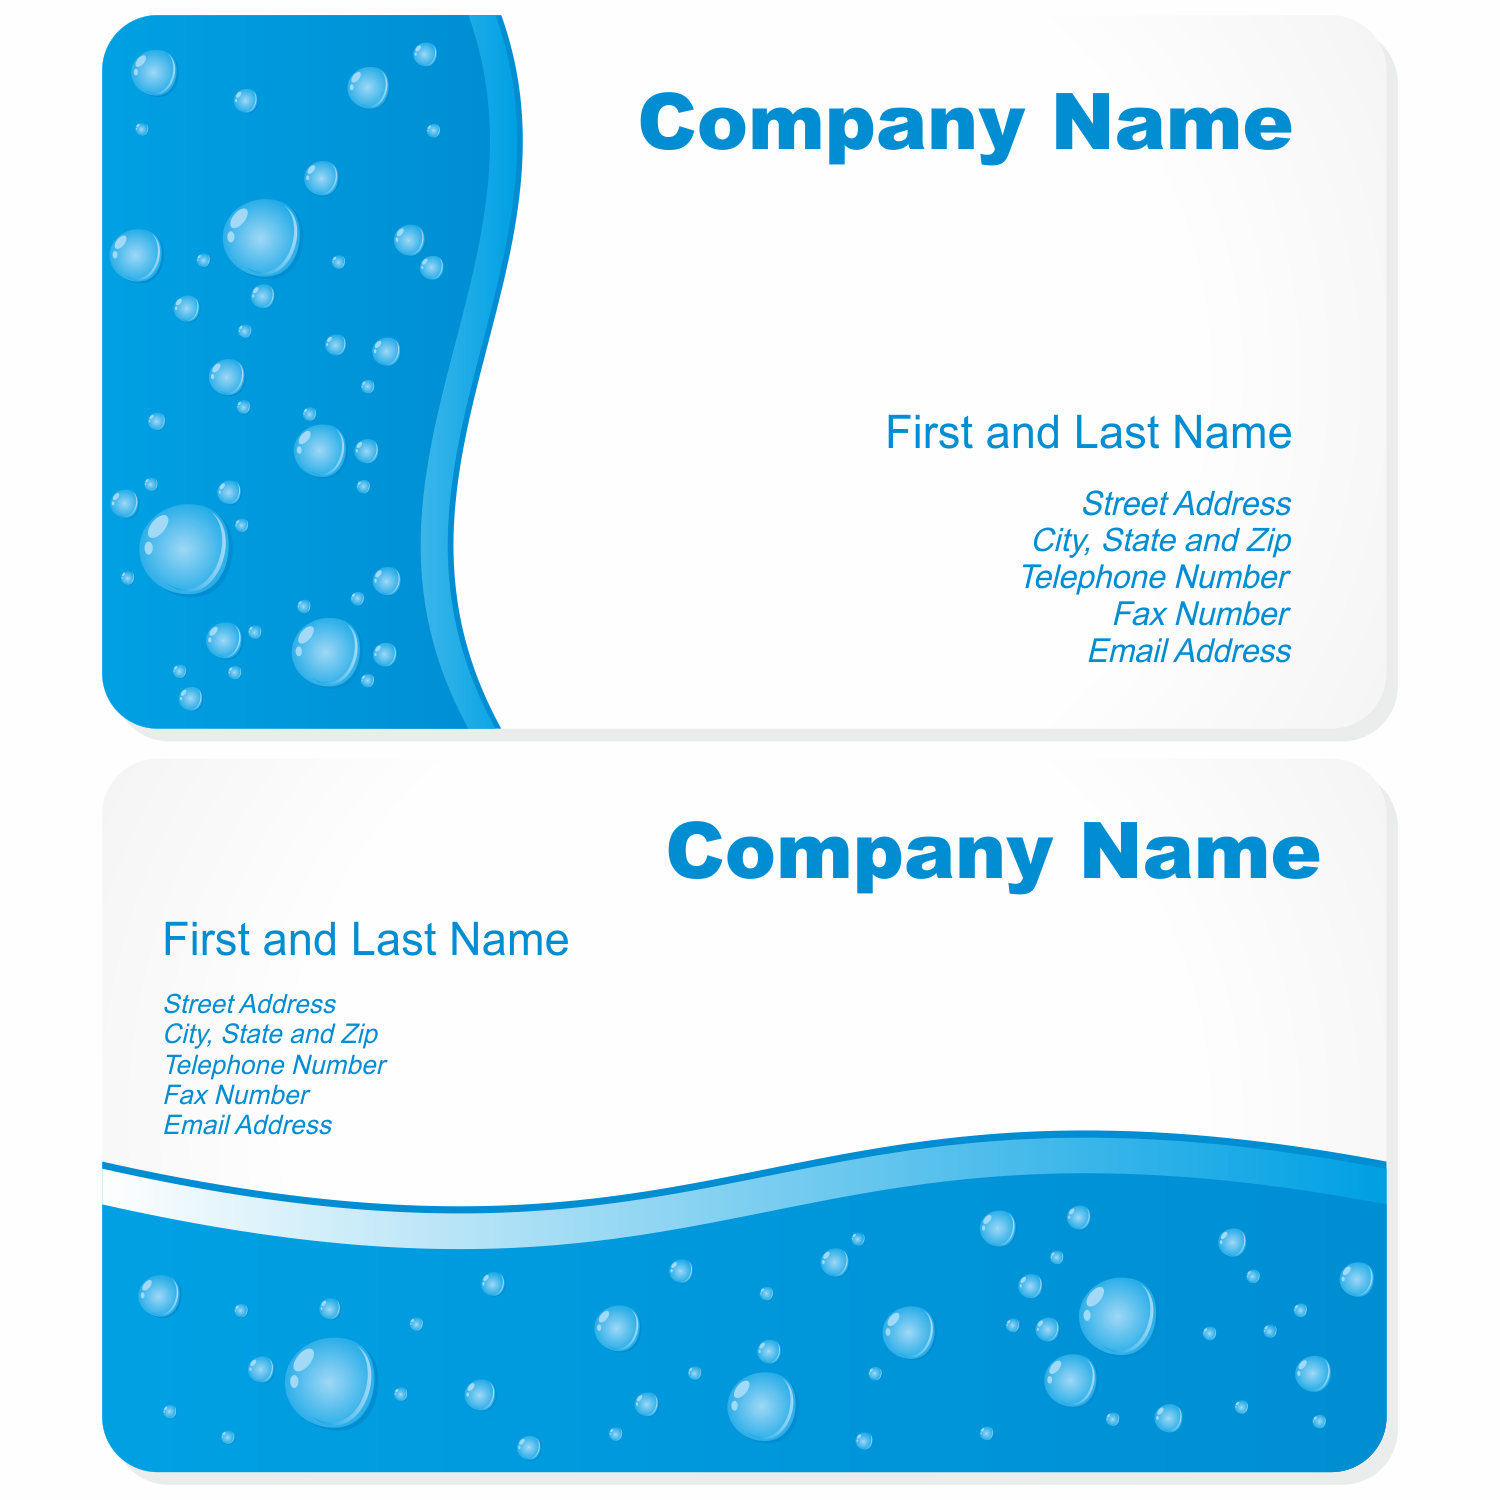 Free business card template online business card sample free business card template online fbccfo